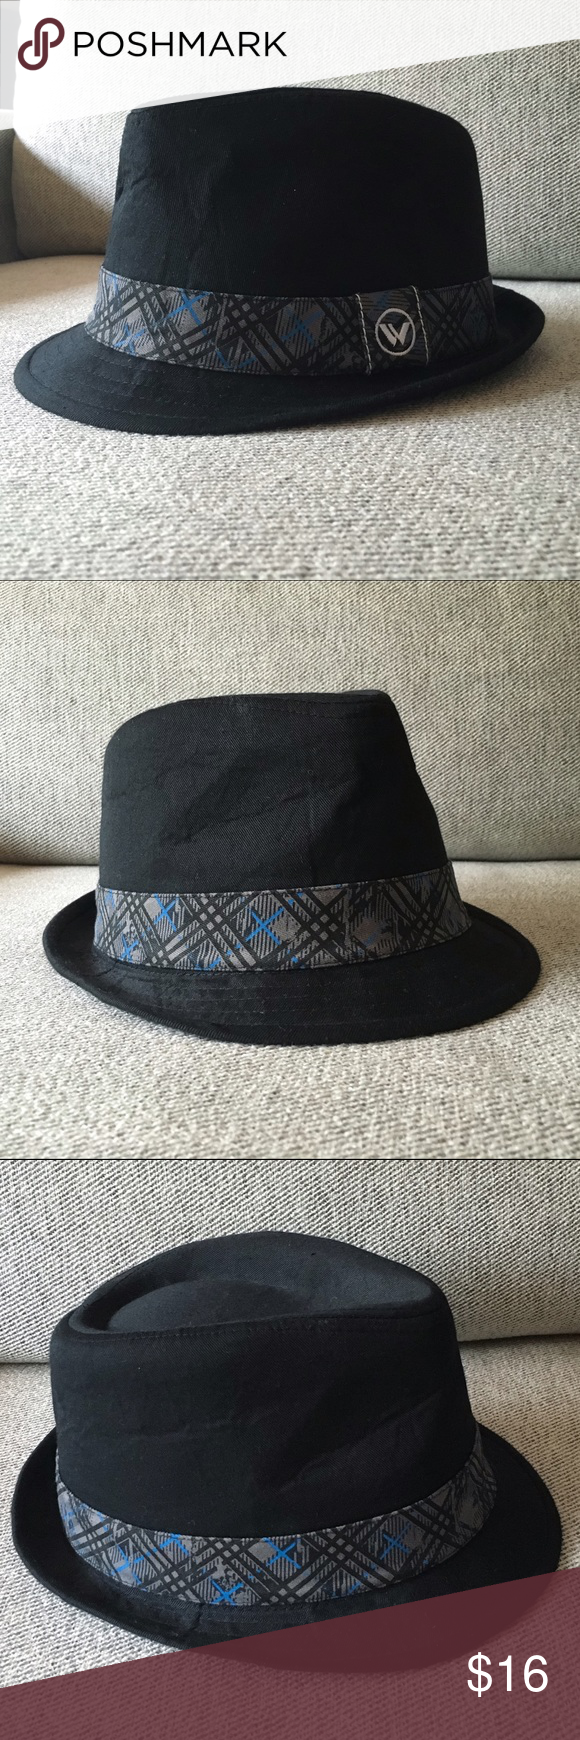 Shaun White fedora for boys Shaun White black fedora for boys. Never worn, slight dent from storage. Youth size 4-16. Shaun White Accessories Hats